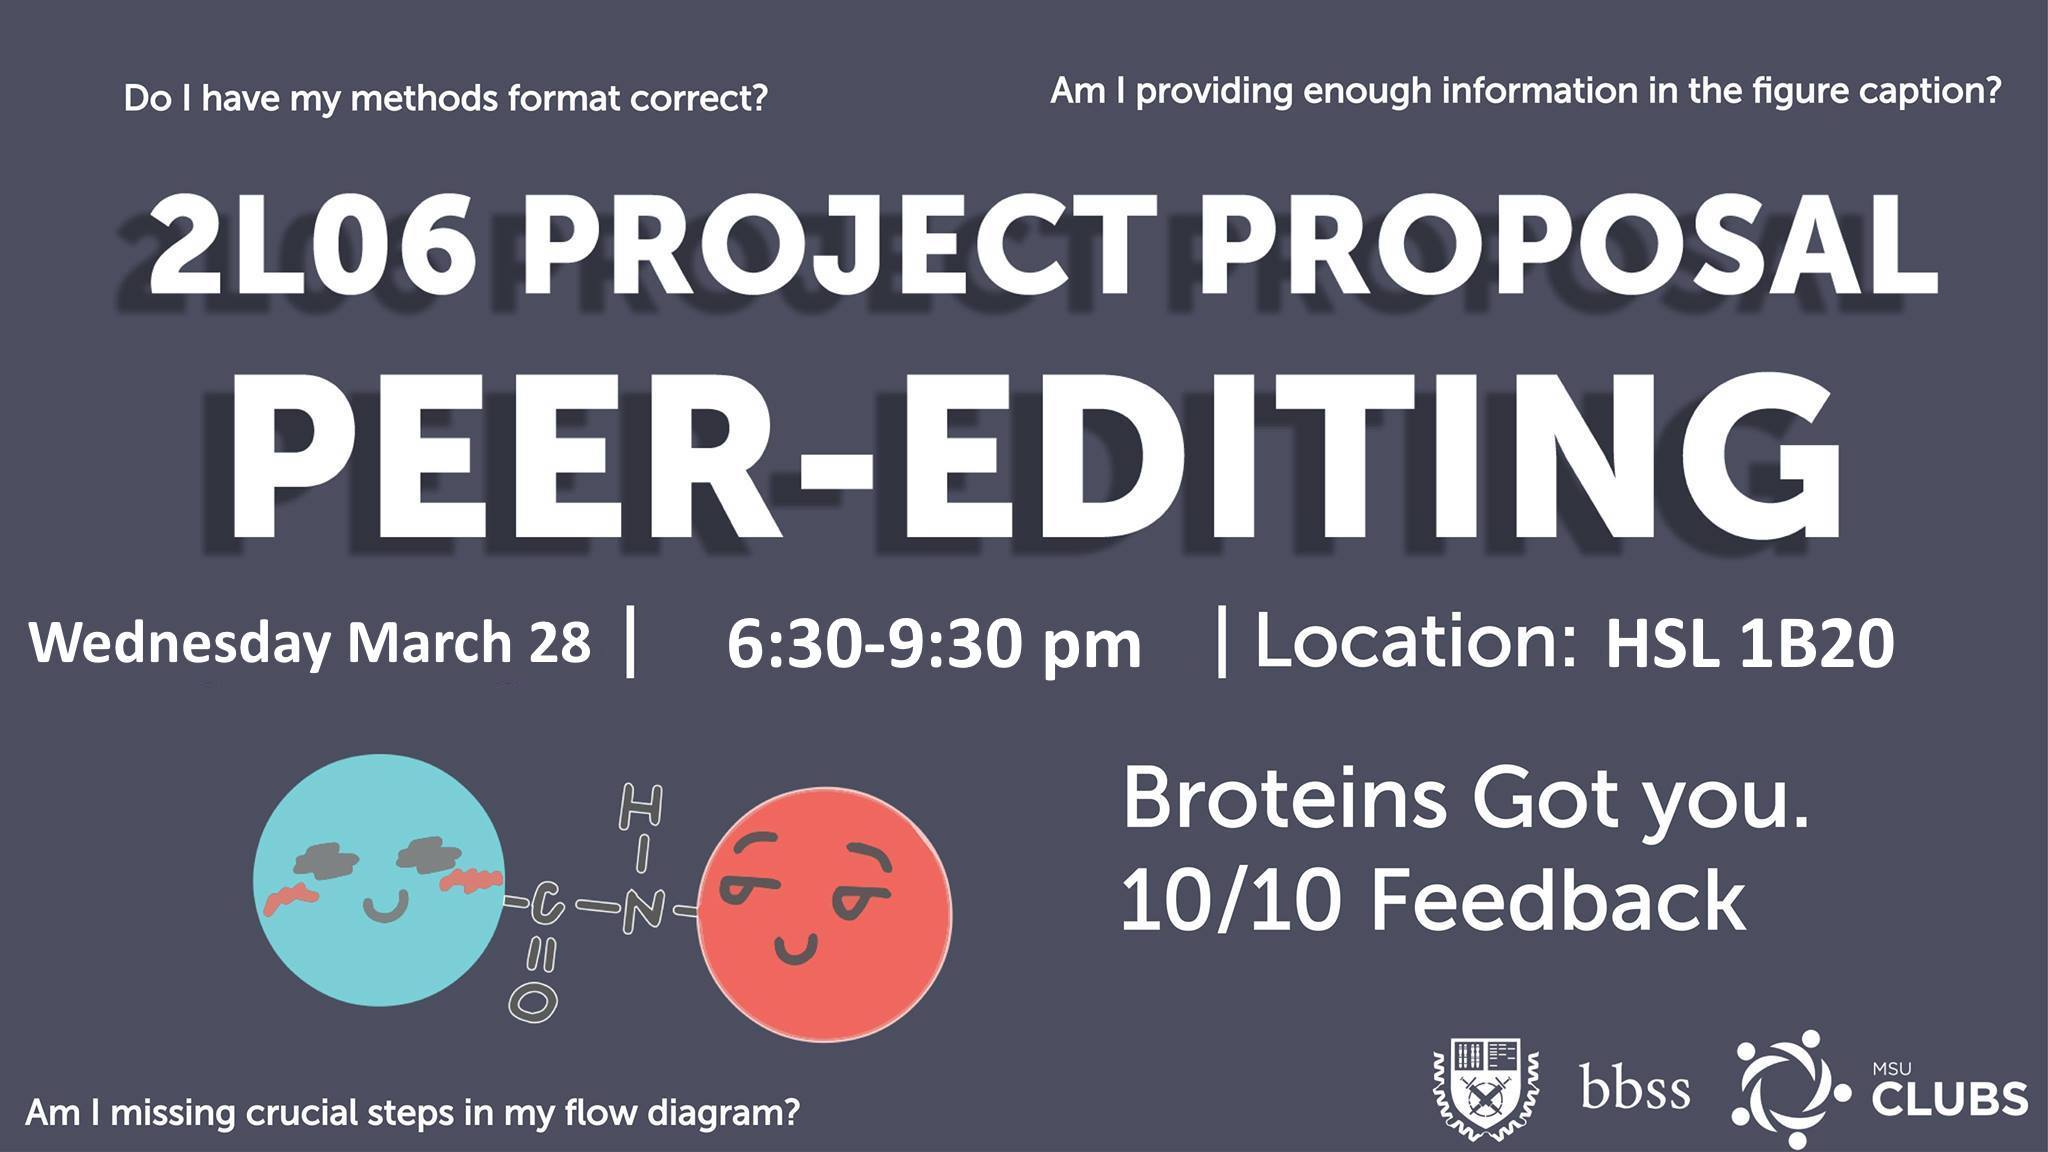 A drop-in session for editing your Grant Proposal with your upper year Broteins!